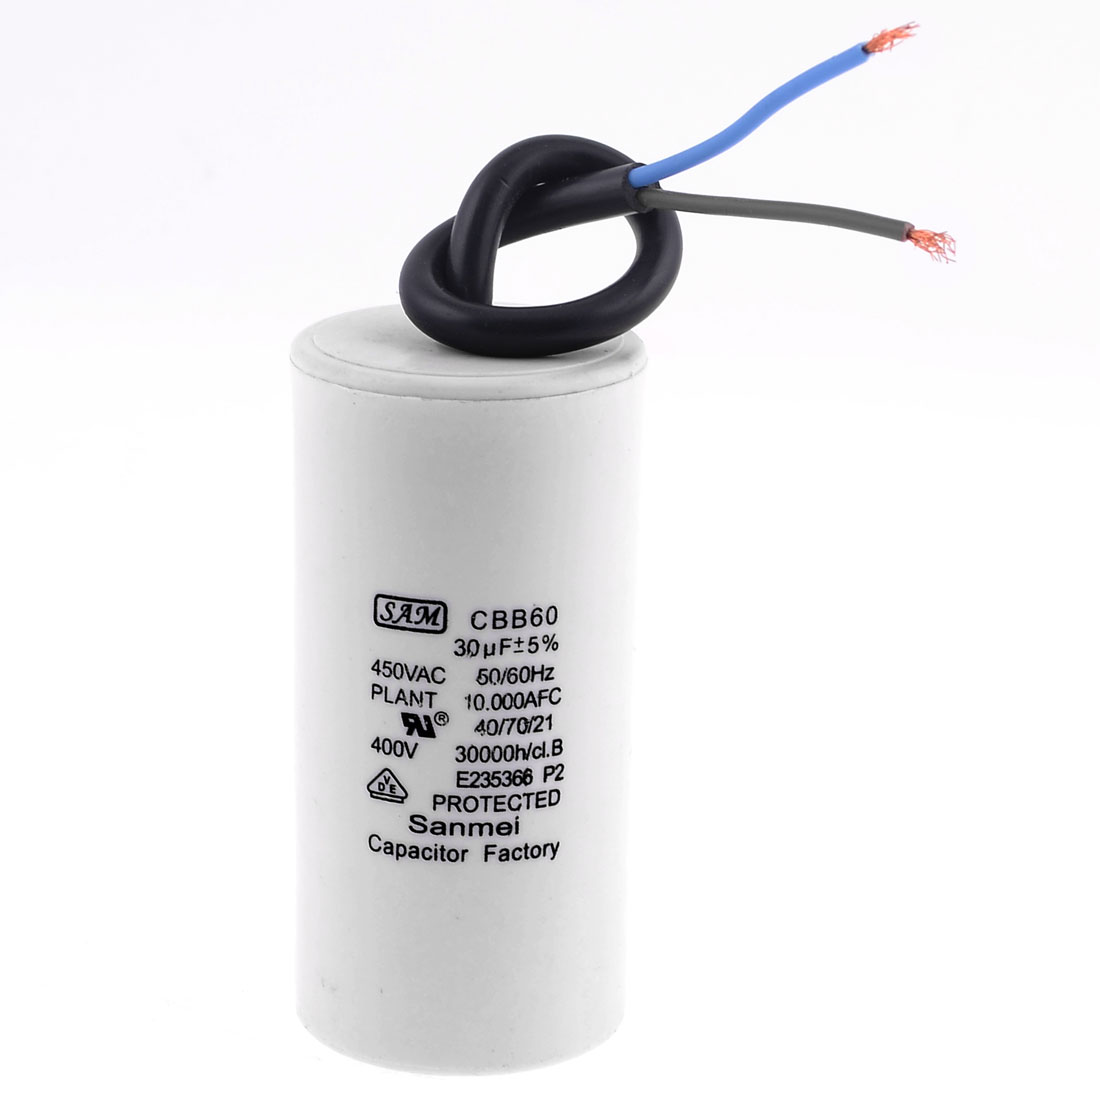 Washing Machine Polypropylene Film AC Motor Run Capacitor 30uF 450V CBB60